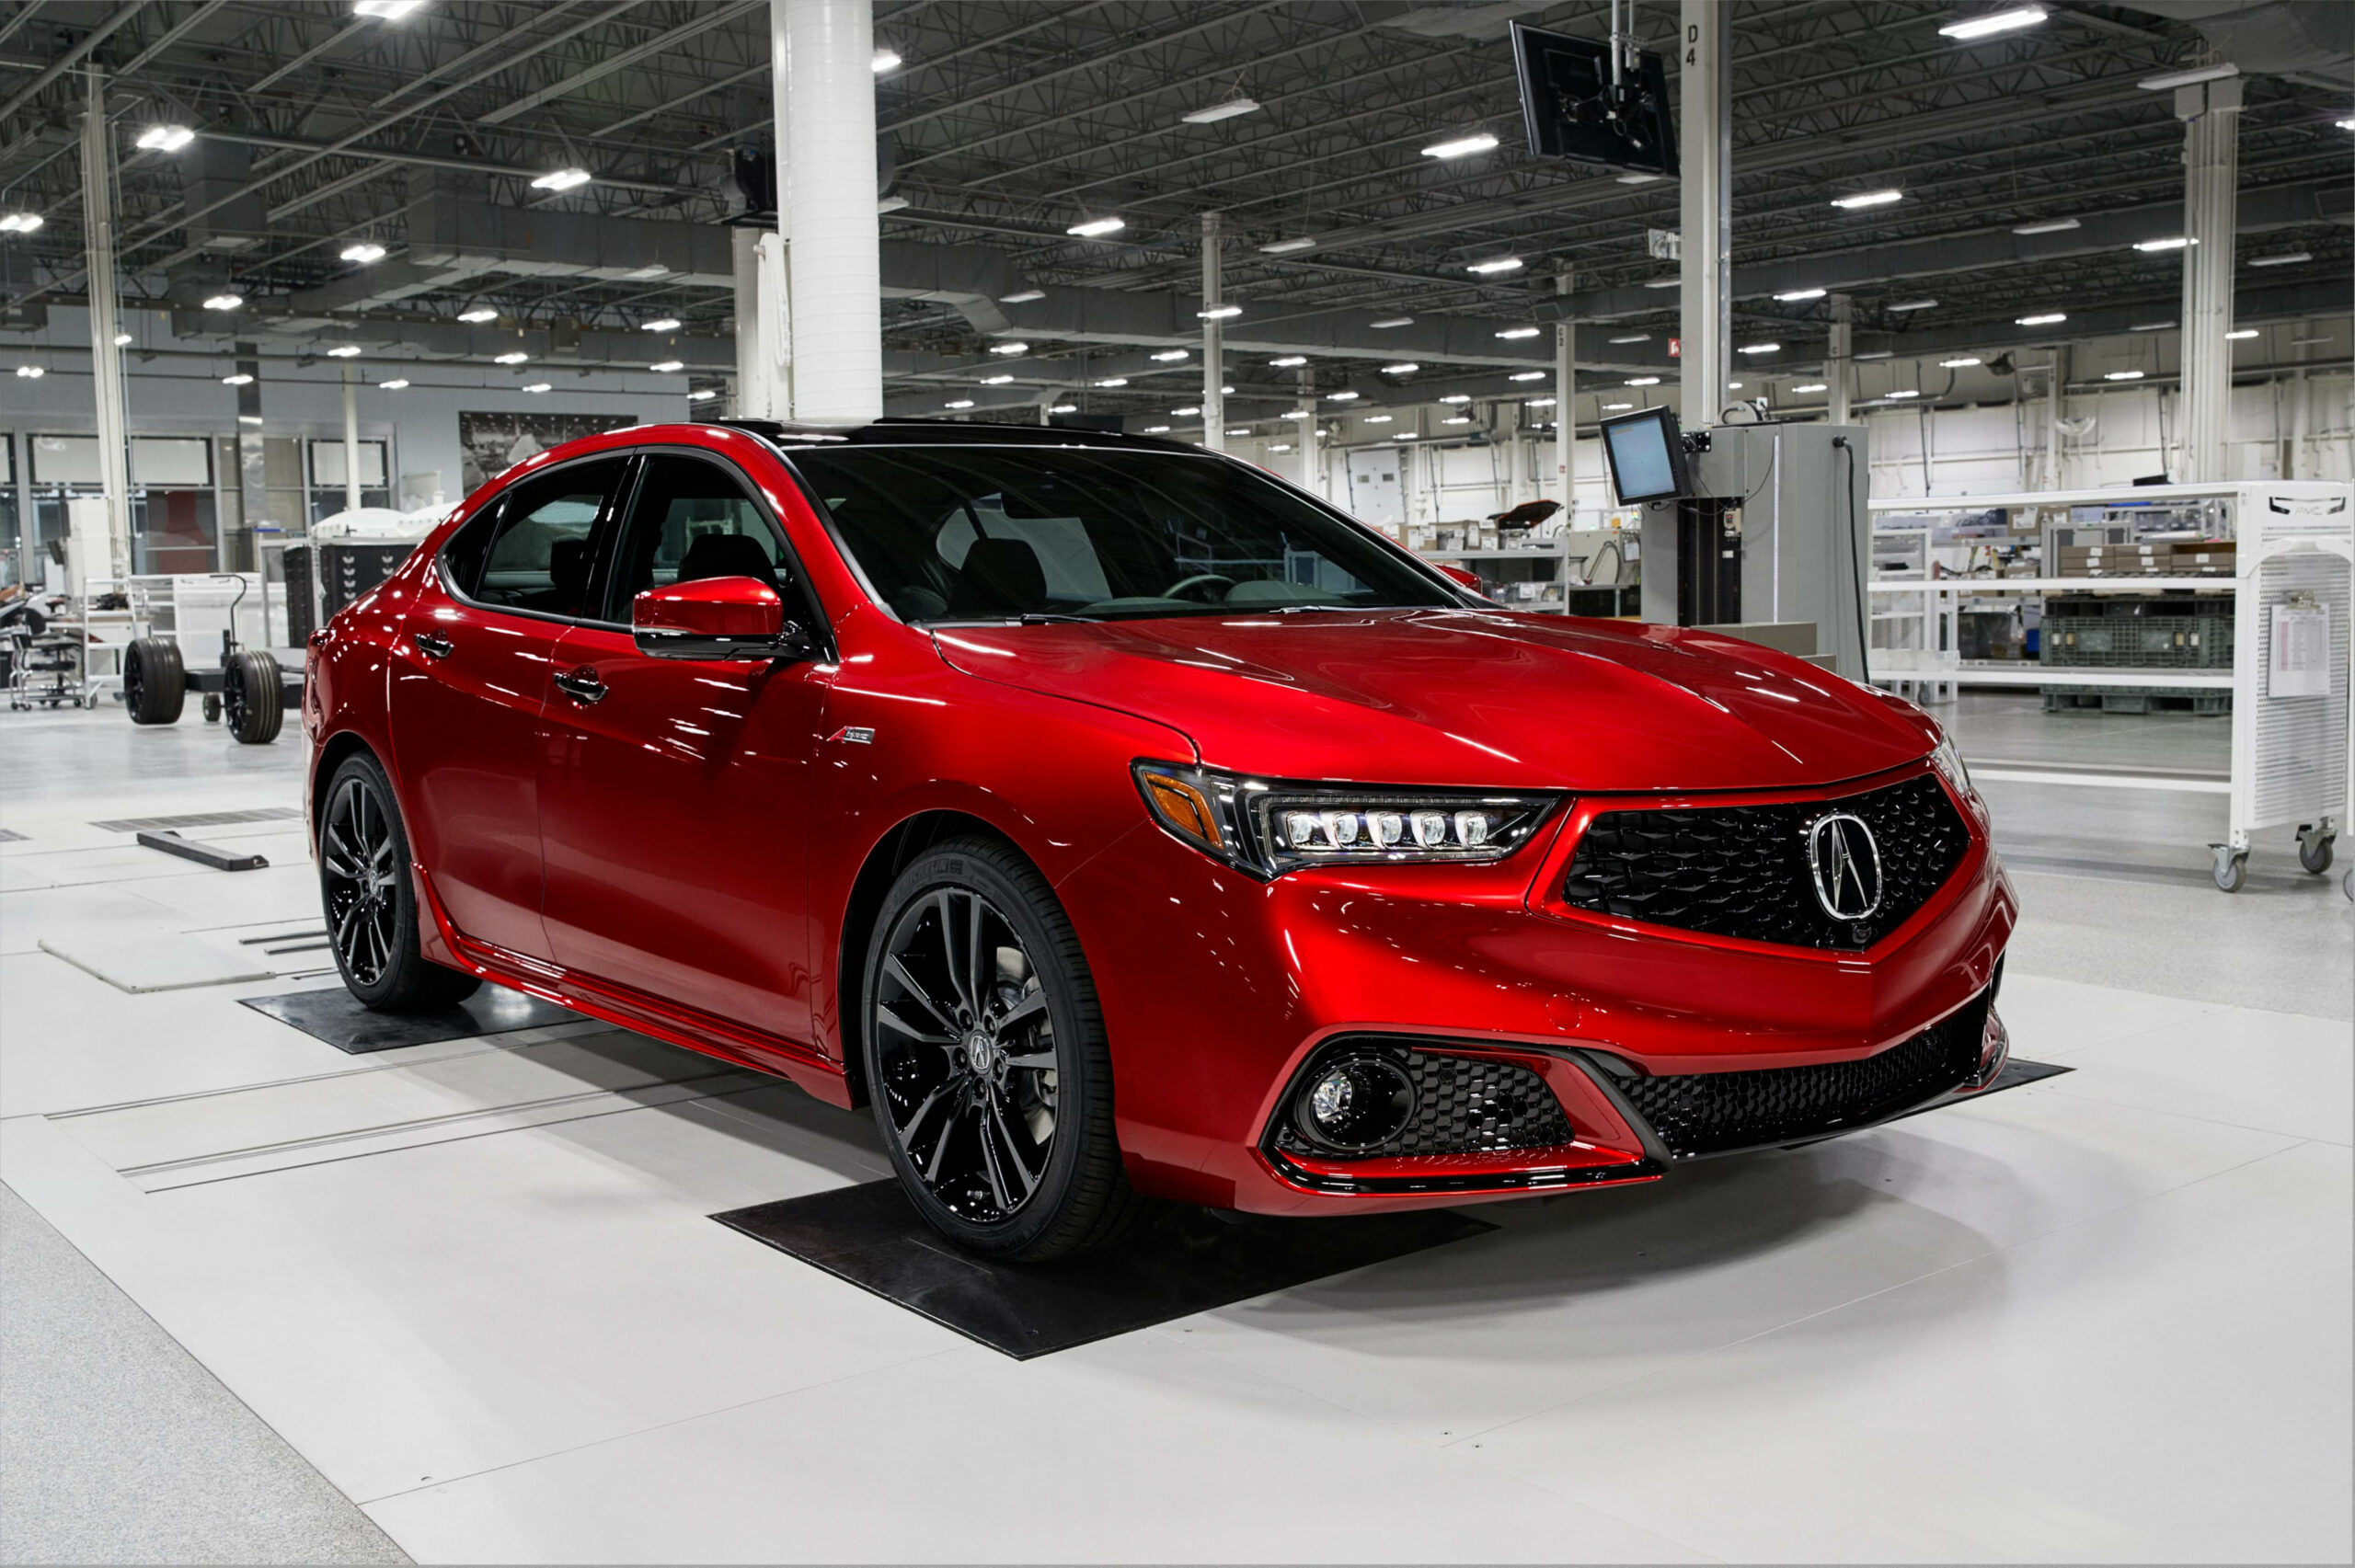 Acura Is Only Building 6 Examples of the 6 TLX PMC Edition ...